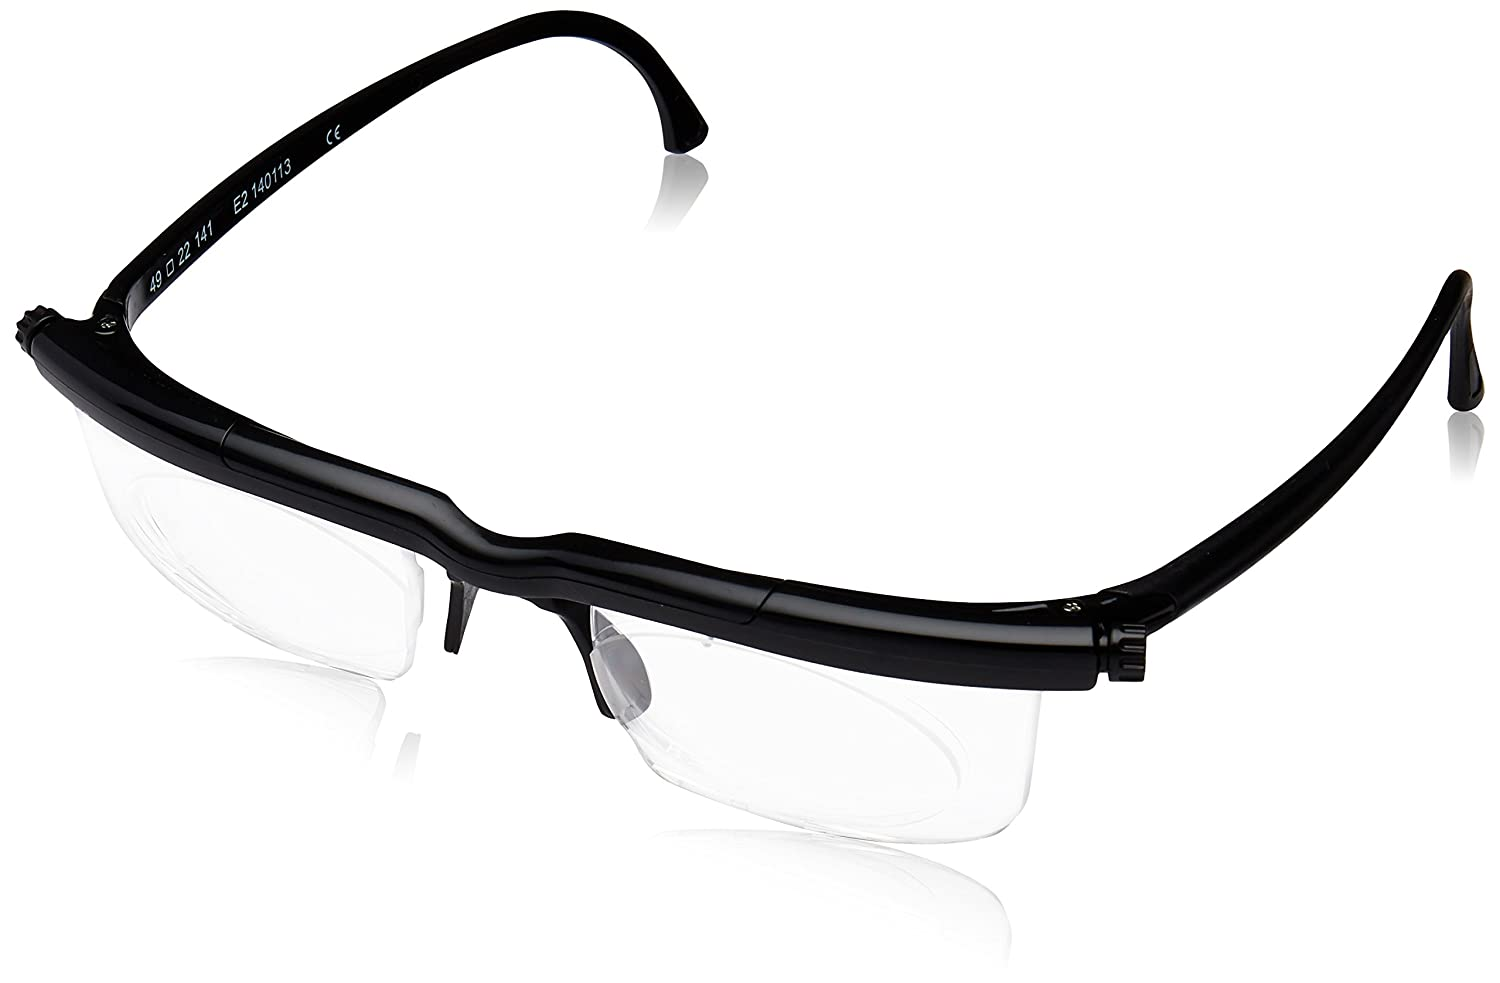 Adlens Men's Prescription Eyewear Frame Black 5055600901146